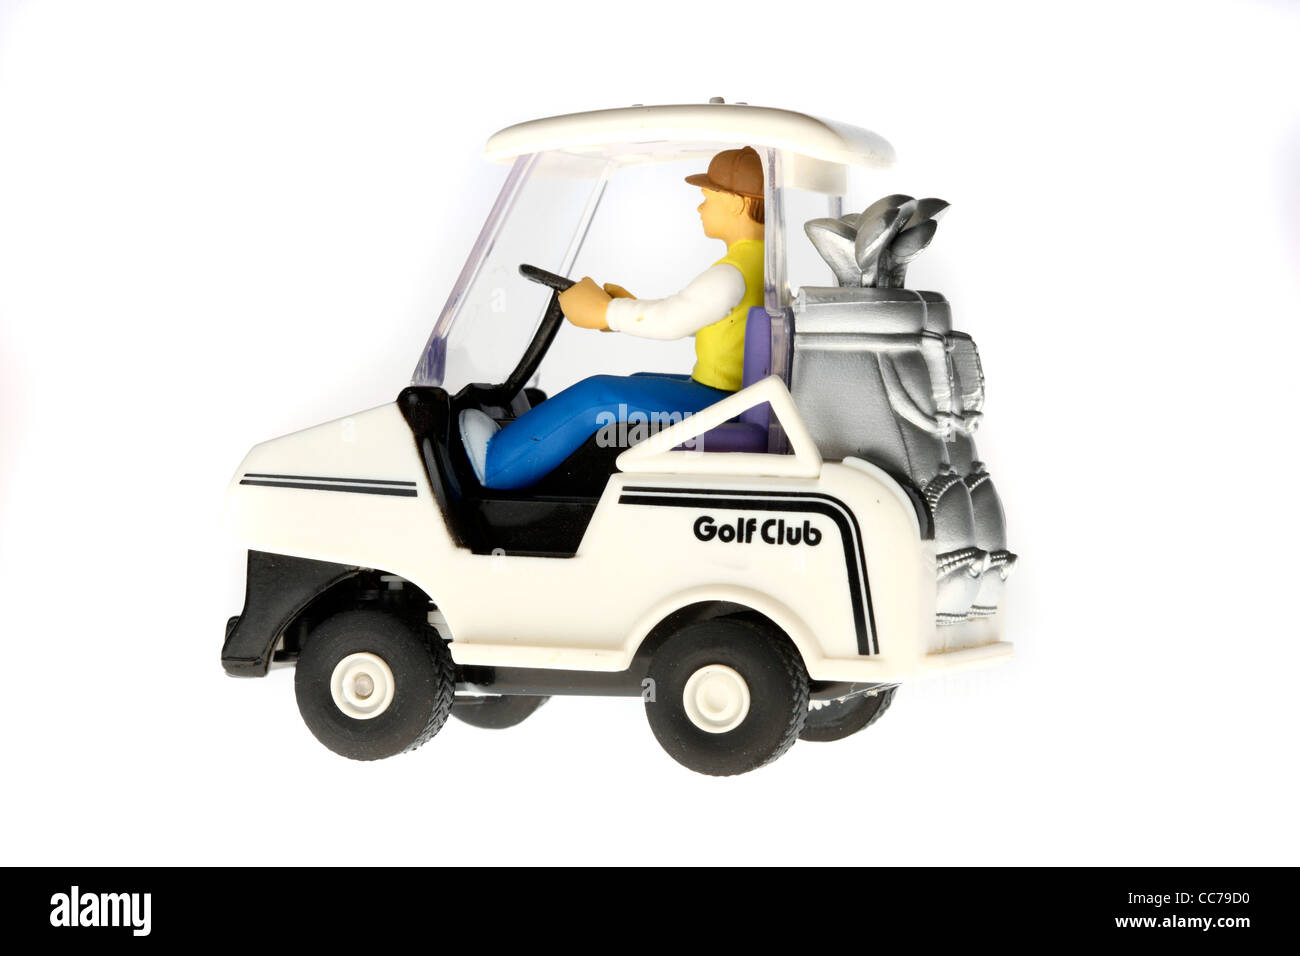 Golf cart, toy for kids, remote controlled, driven by batteries. Golf souvenir. - Stock Image